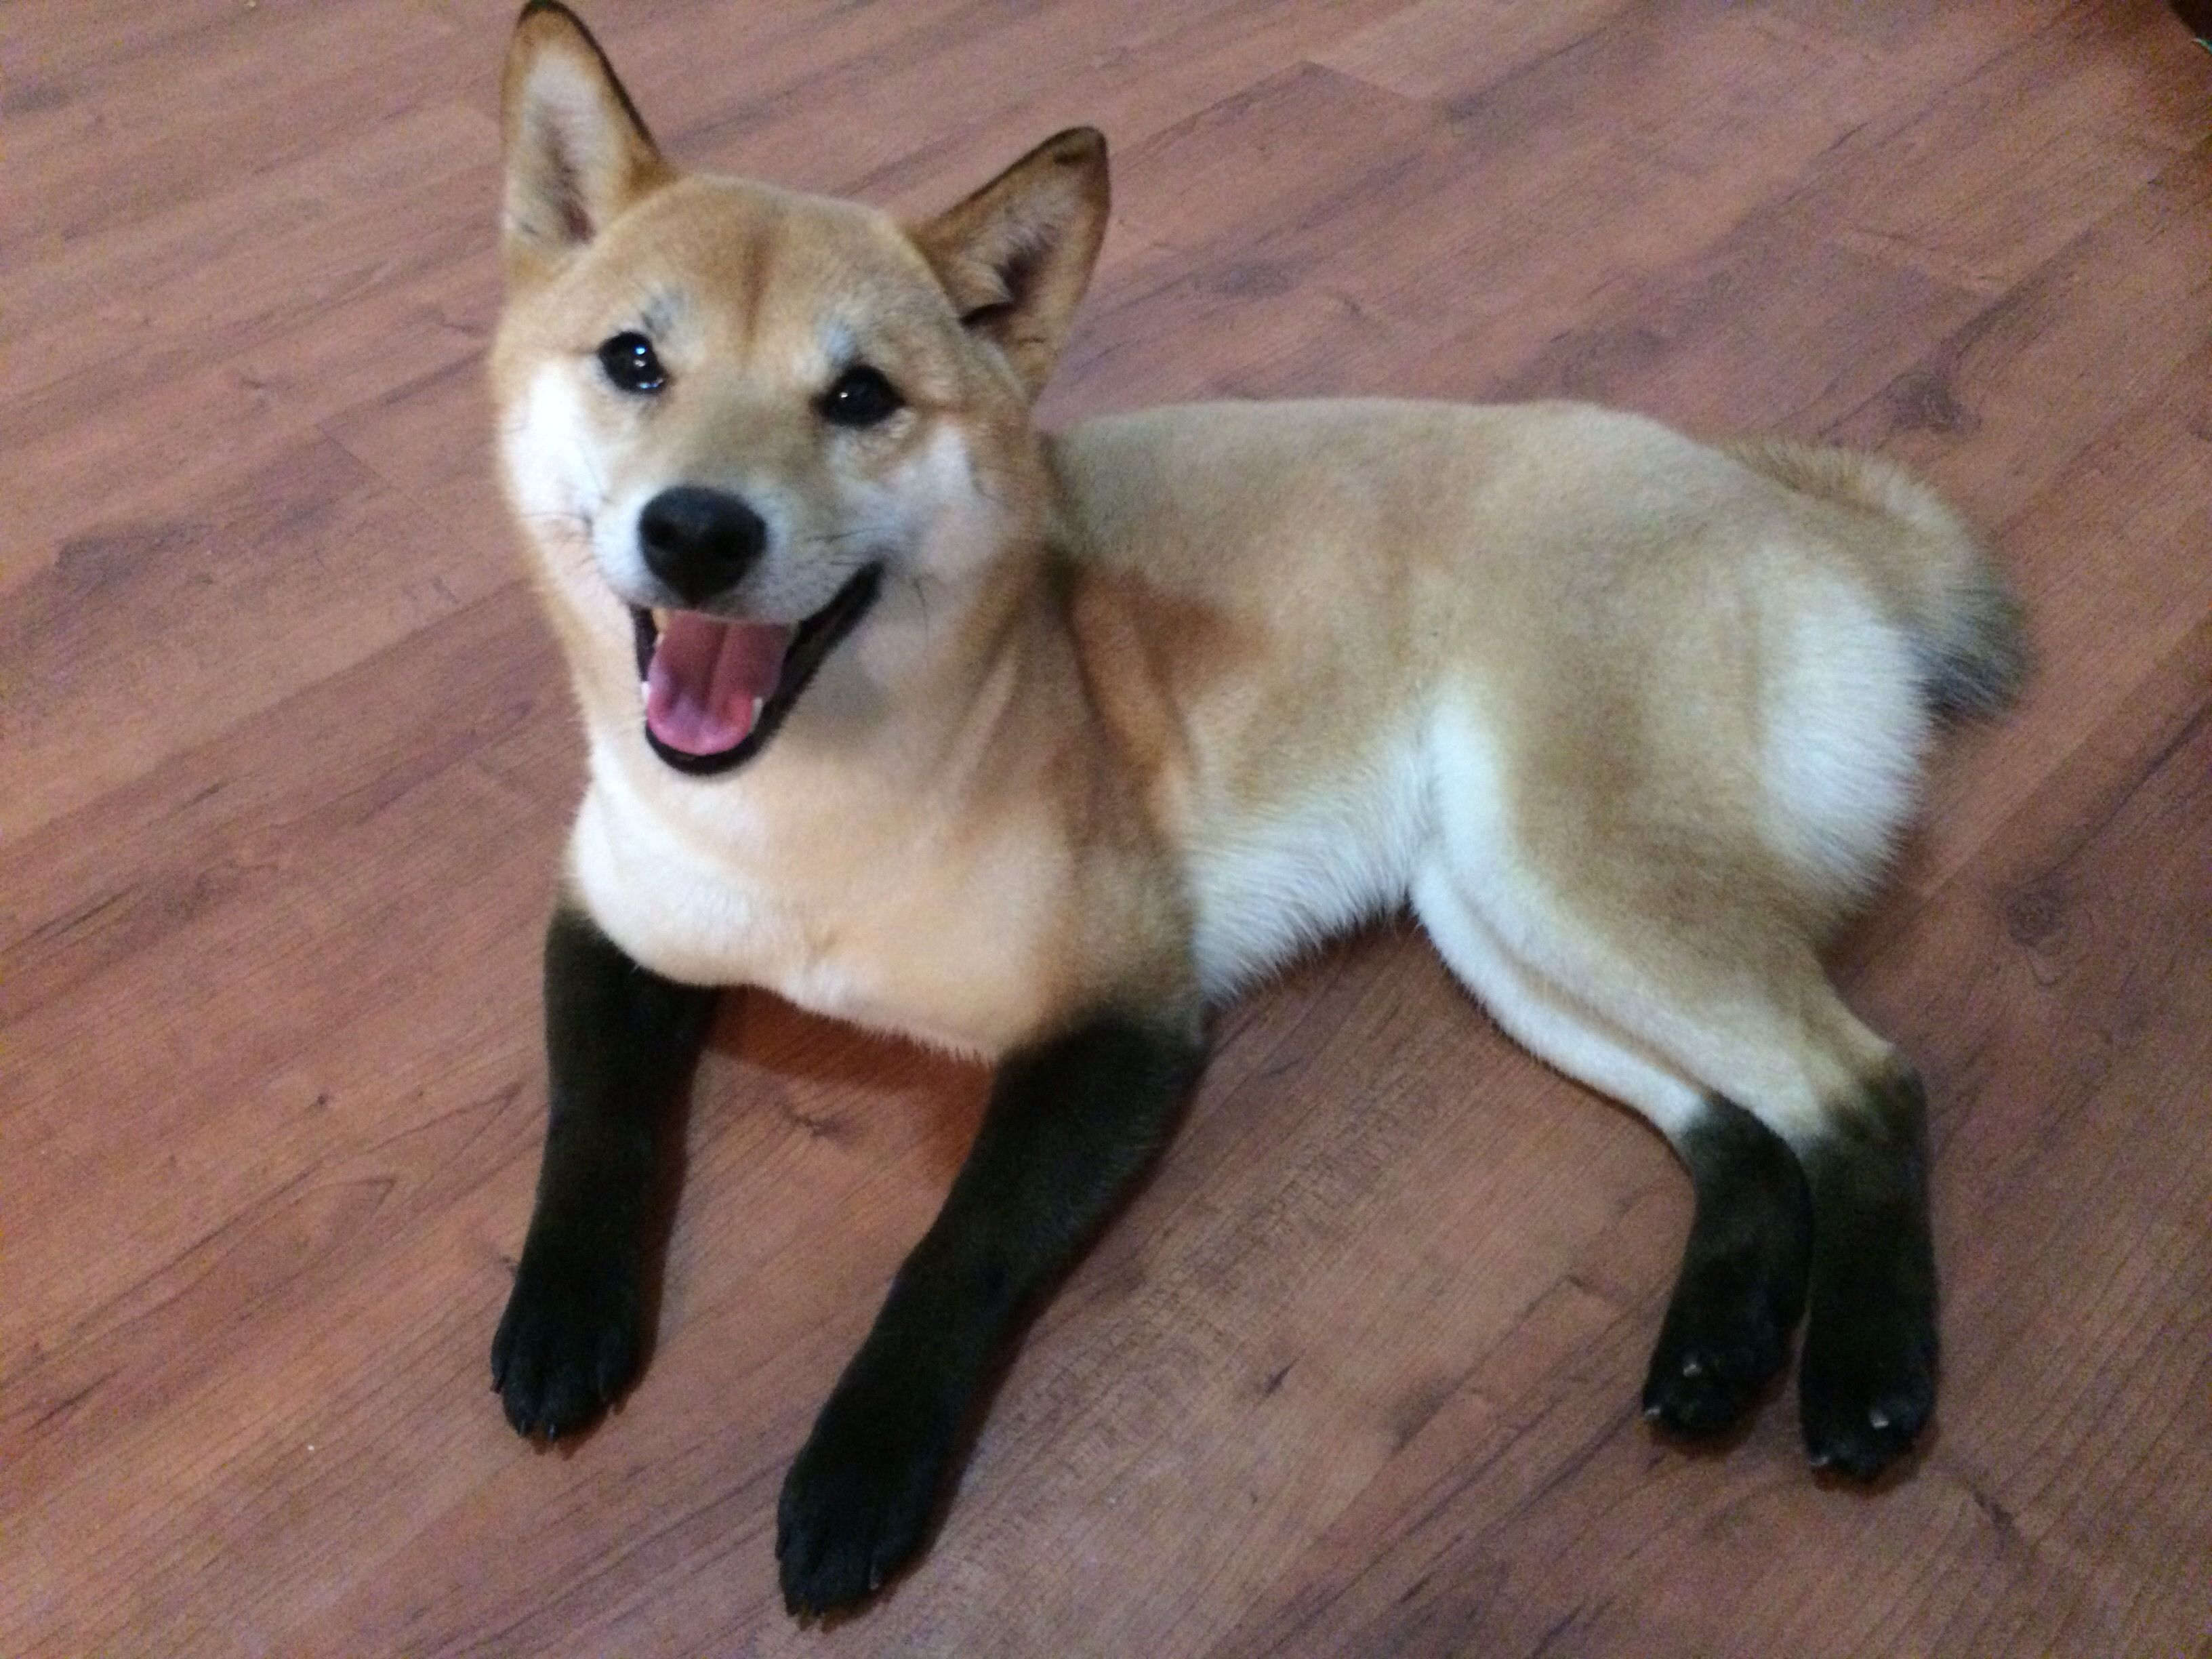 Red Fox Shiba Imgur Isn T He Beautiful Owner Dyed His Legs And Ears So He Looks Like A Fox Cross Bred With A Shiba Smiling Dogs Cute Corgi Puppy